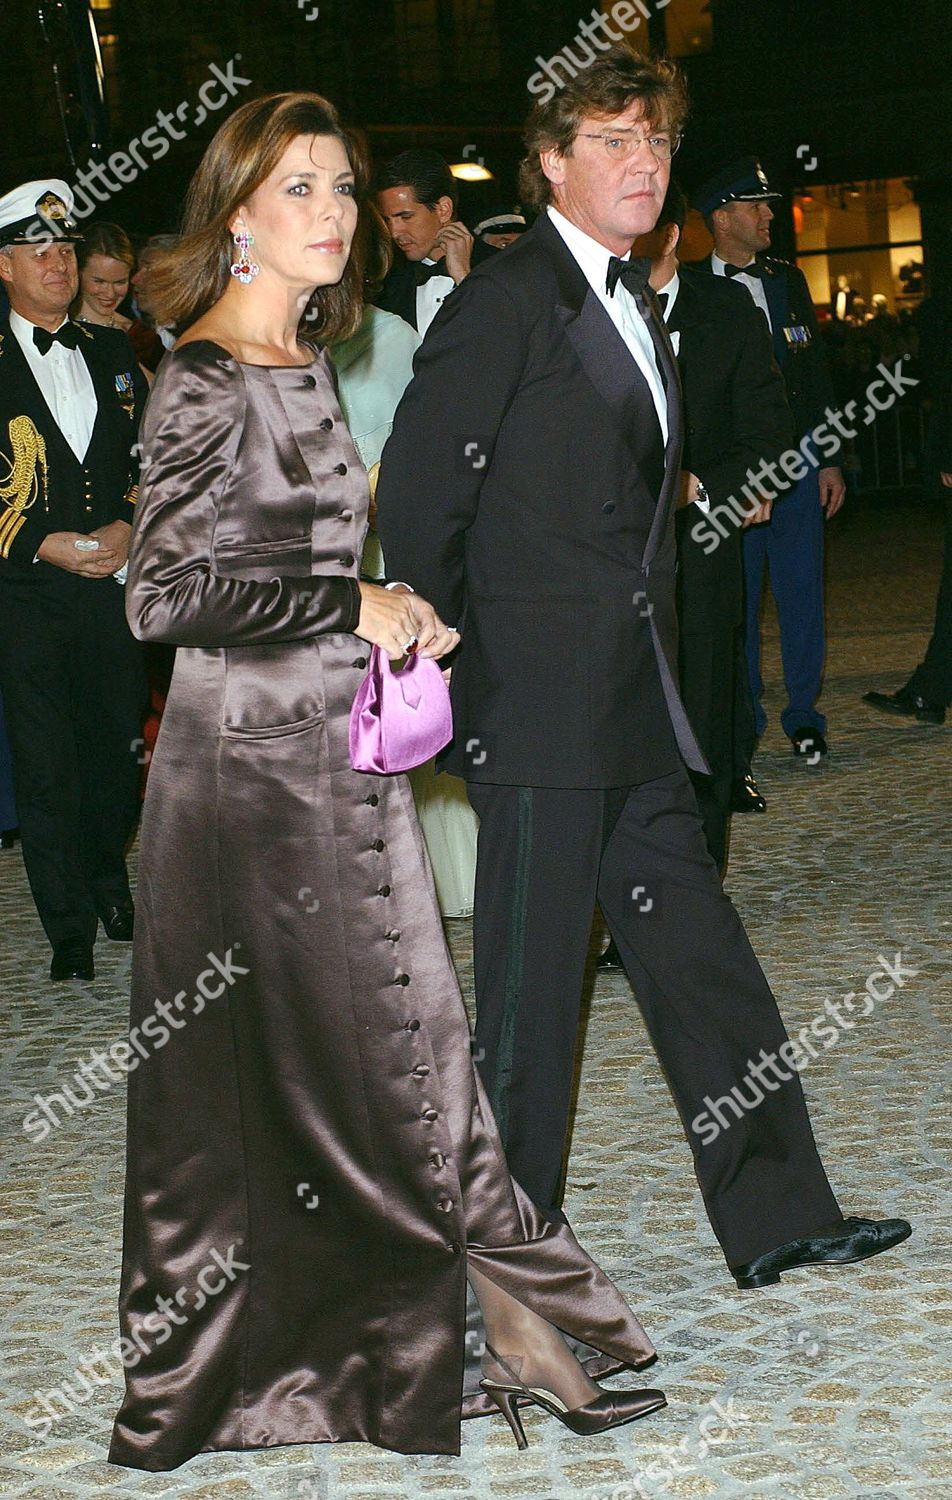 PRE WEDDING DINNER PARTY FOR PRINCE WILLEM AND MAXIMA ZORREGUIETA, ROYAL PALACE, AMSTERDAM, NETHERLANDS - 31 JAN 2002: стоковое фото